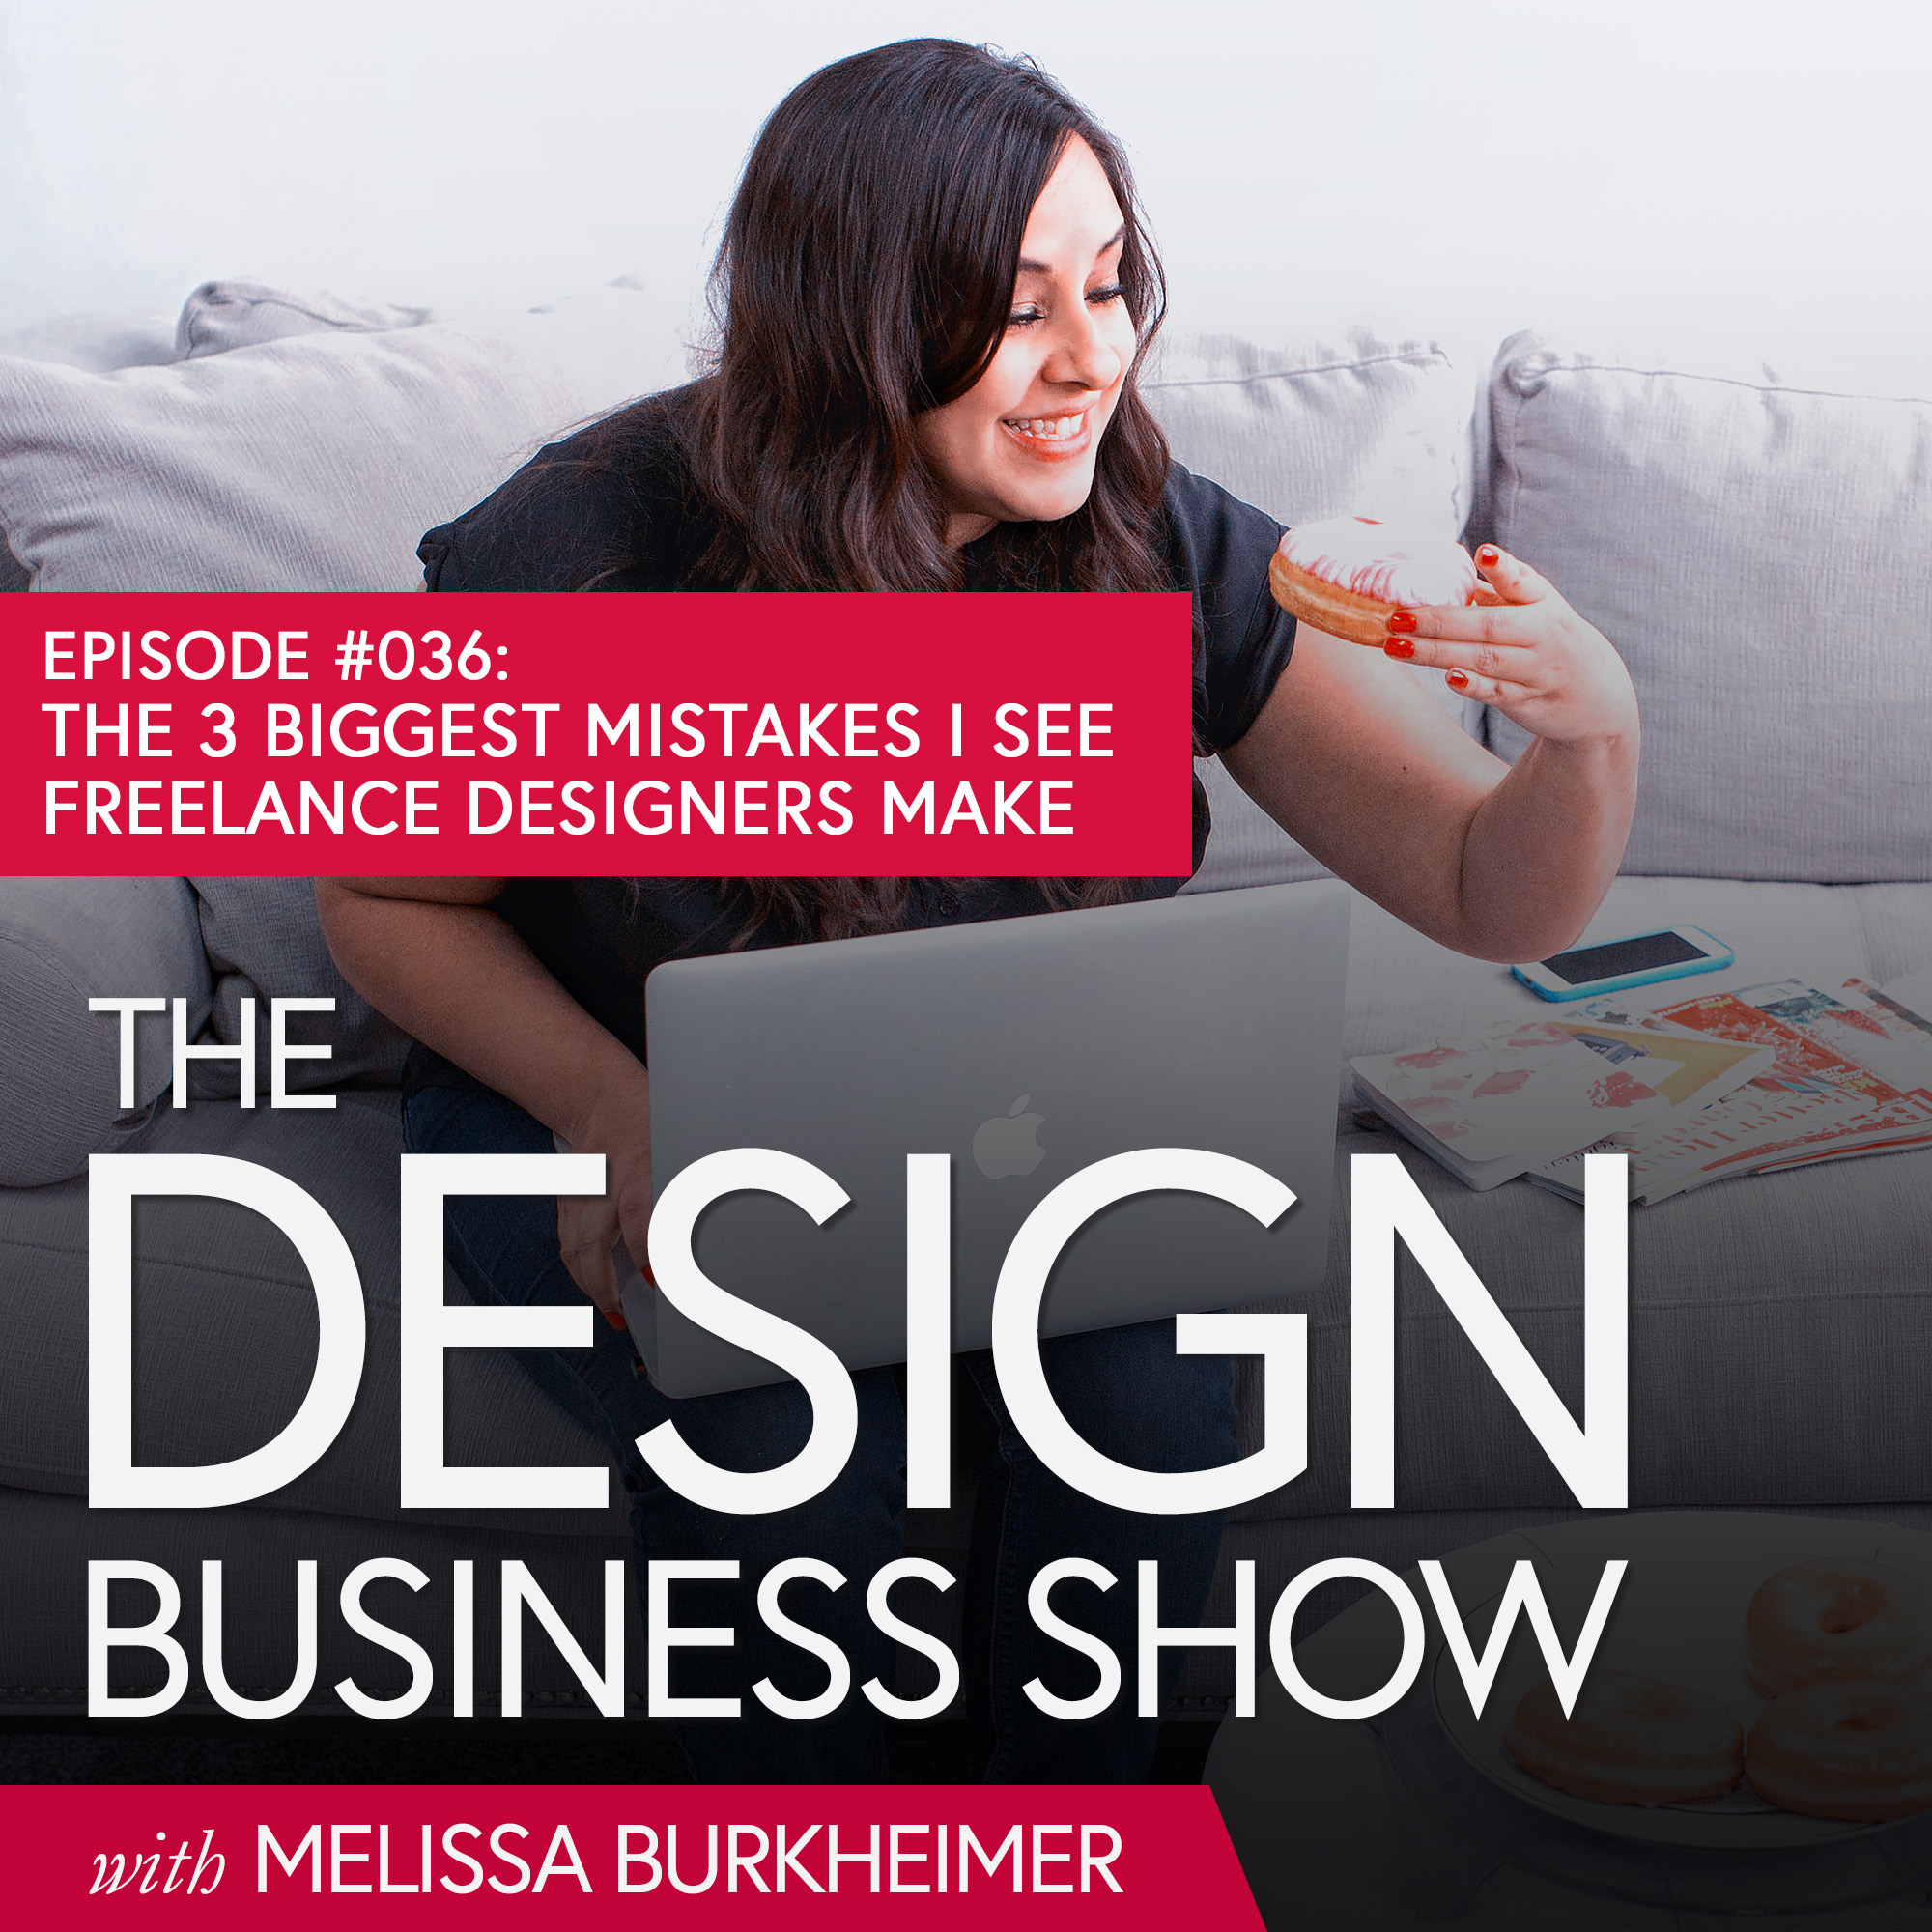 We're changing things up today on The Design Business Show – and I'm back for a solo show to talk about the 3 biggest mistakes I see freelance designers make in their business and how to solve them!